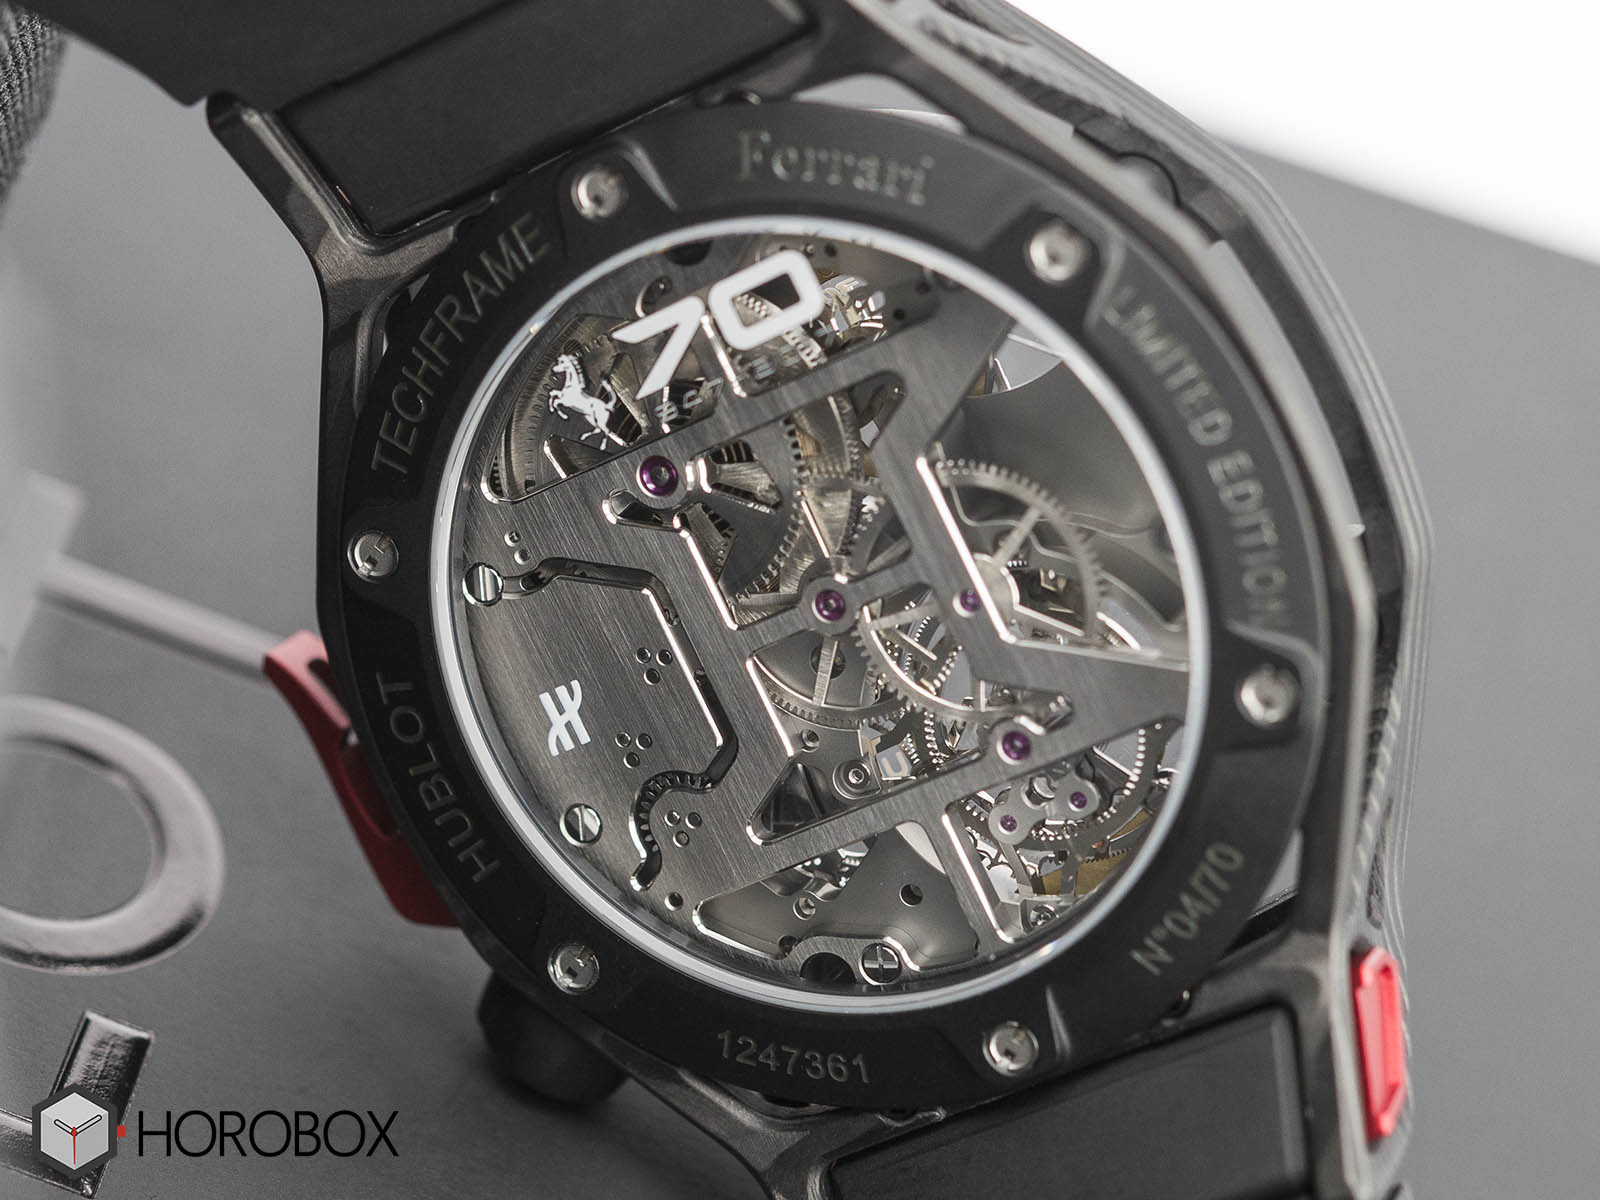 hublot-techframe-ferrari-70-years-tourbillon-chronograph-4-.jpg